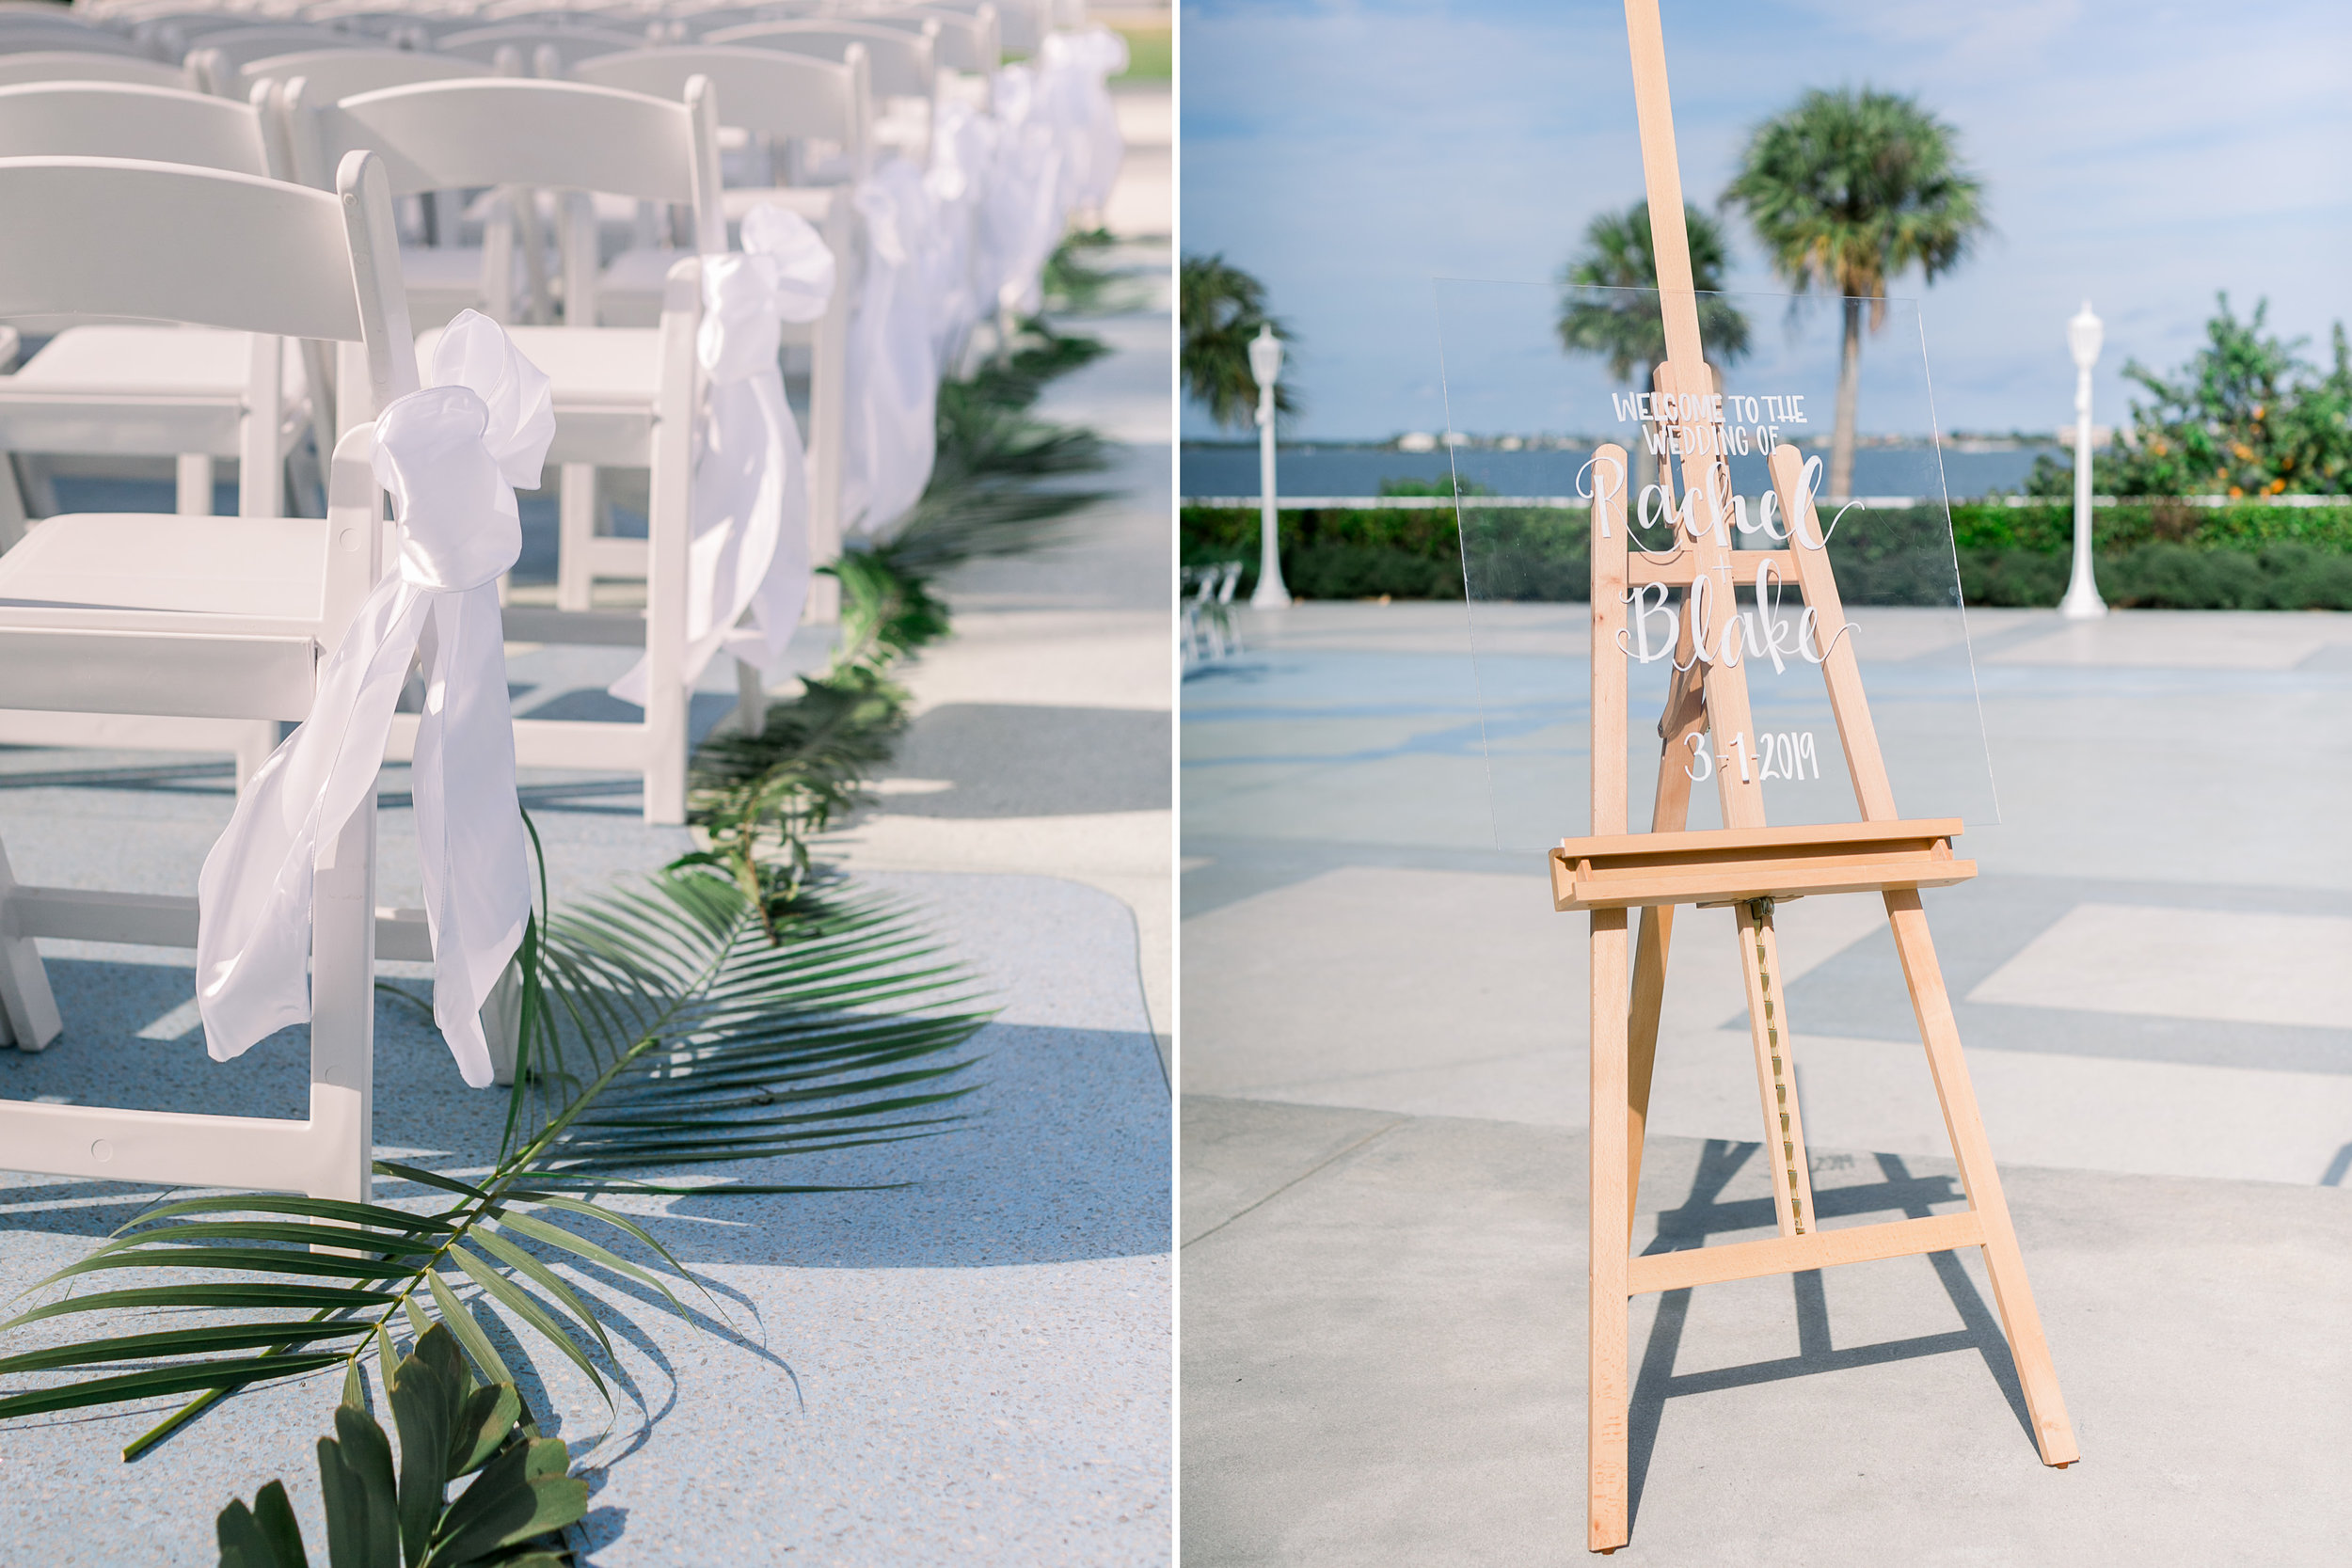 weddingceremonystuartflorida.jpg